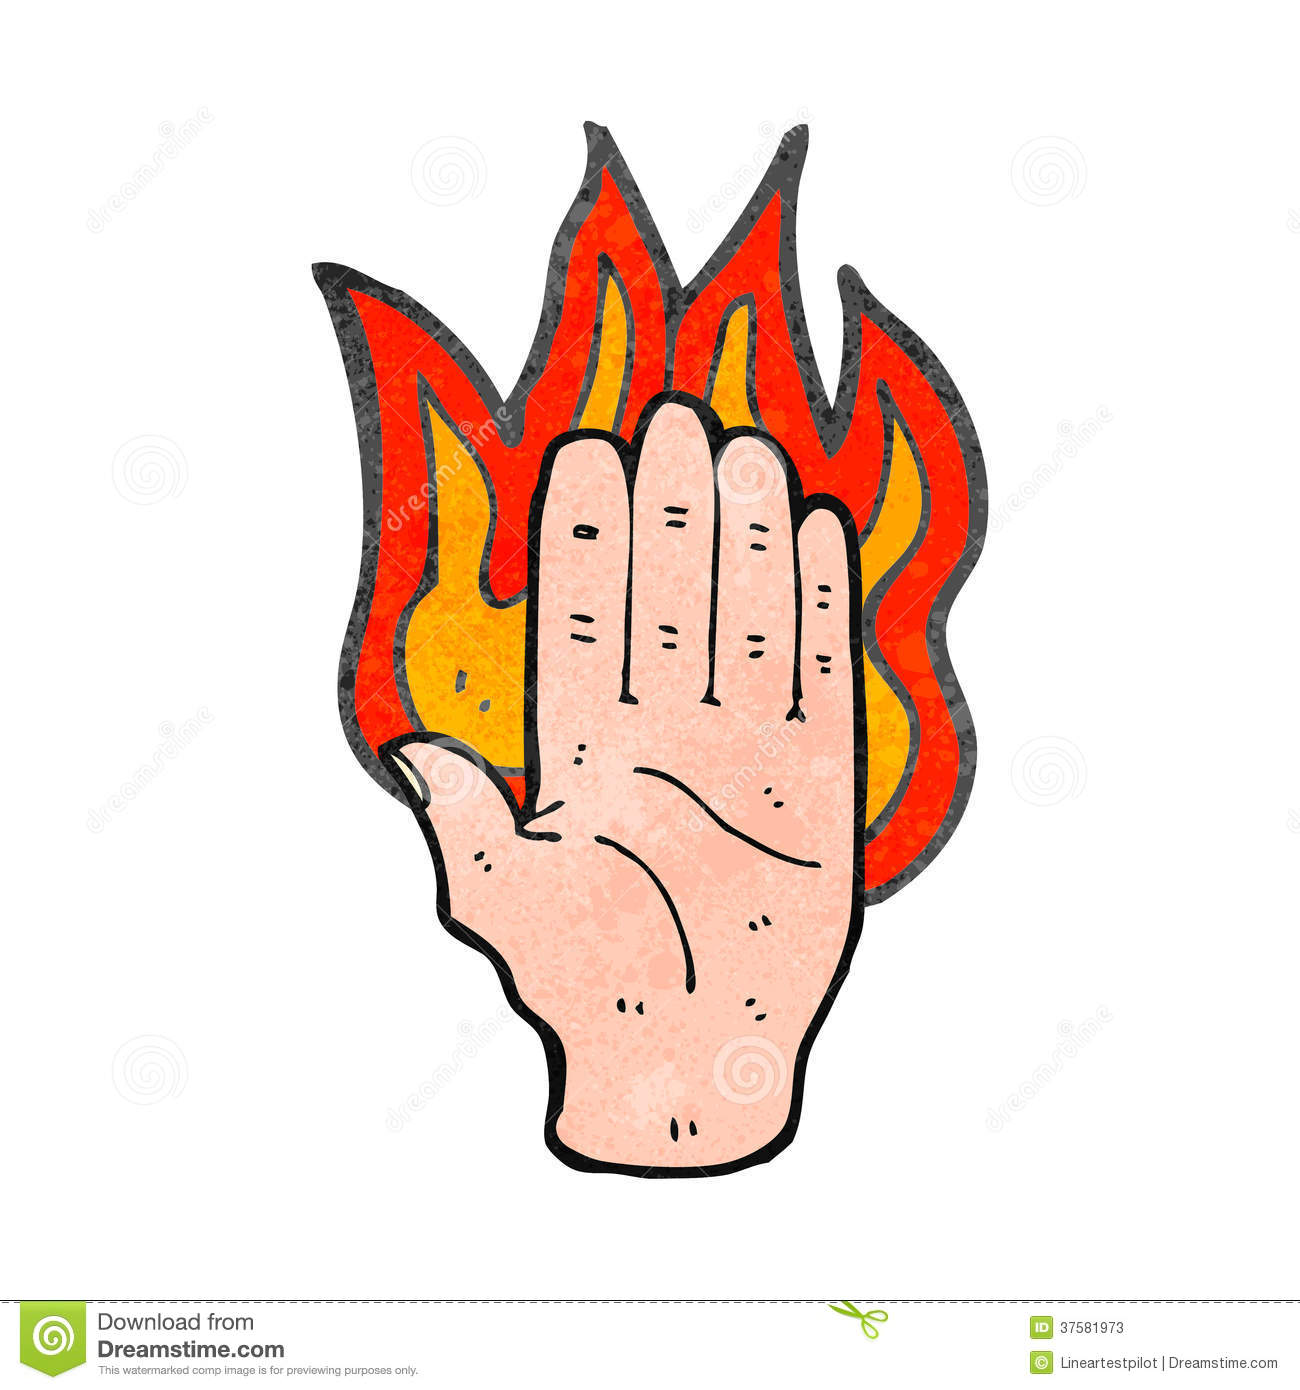 Retro cartoon burning hand stock vector. Illustration of texture.